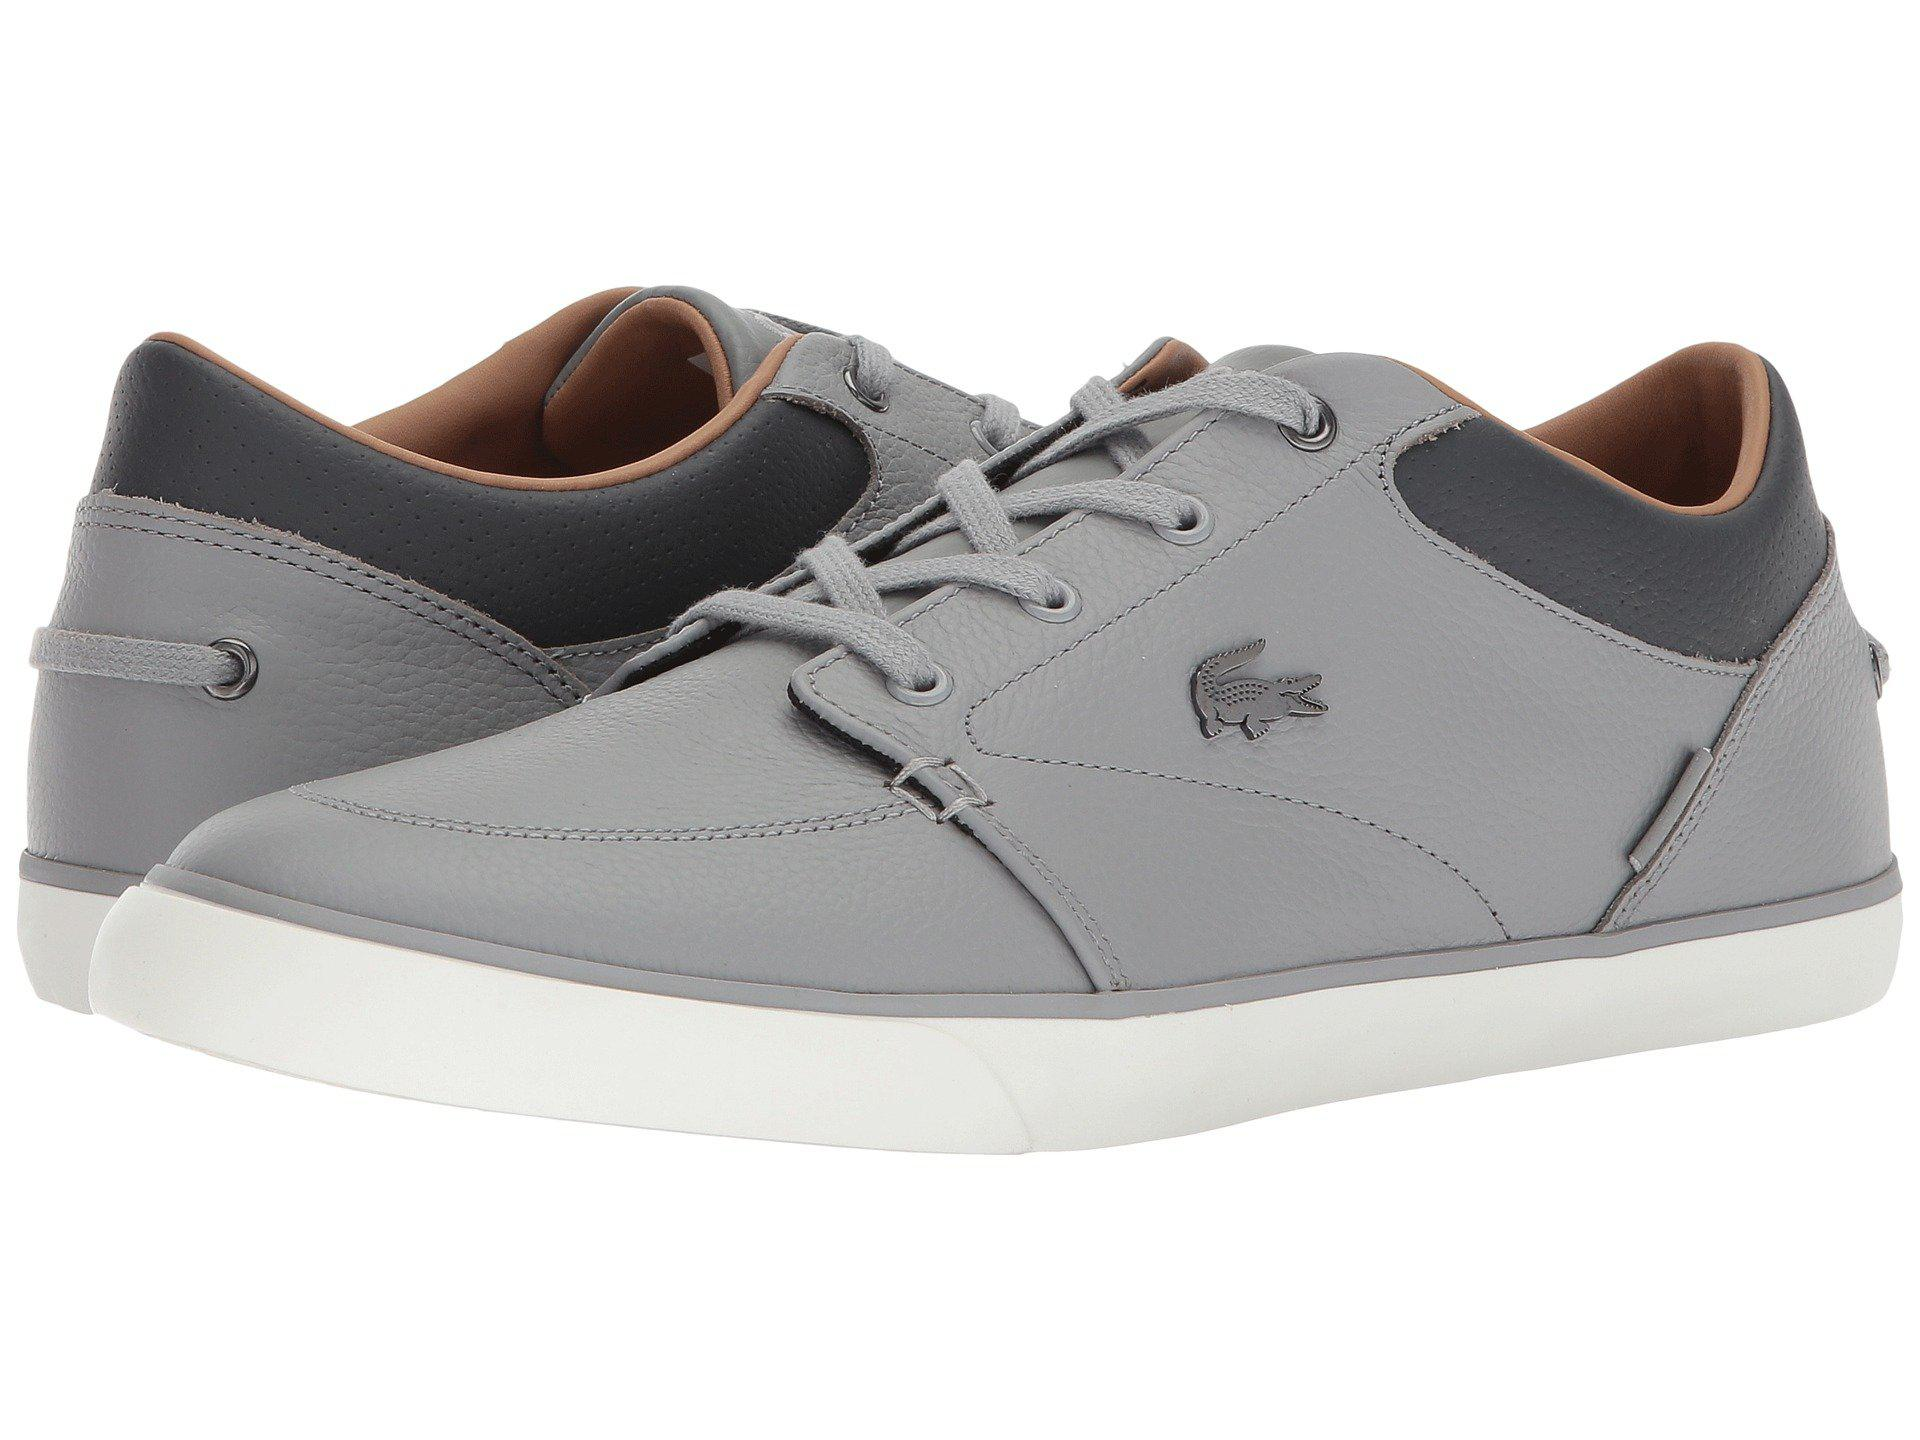 6cd931911 Lyst - Lacoste Bayliss 118 1 (navy off-white) Men s Shoes in Gray ...